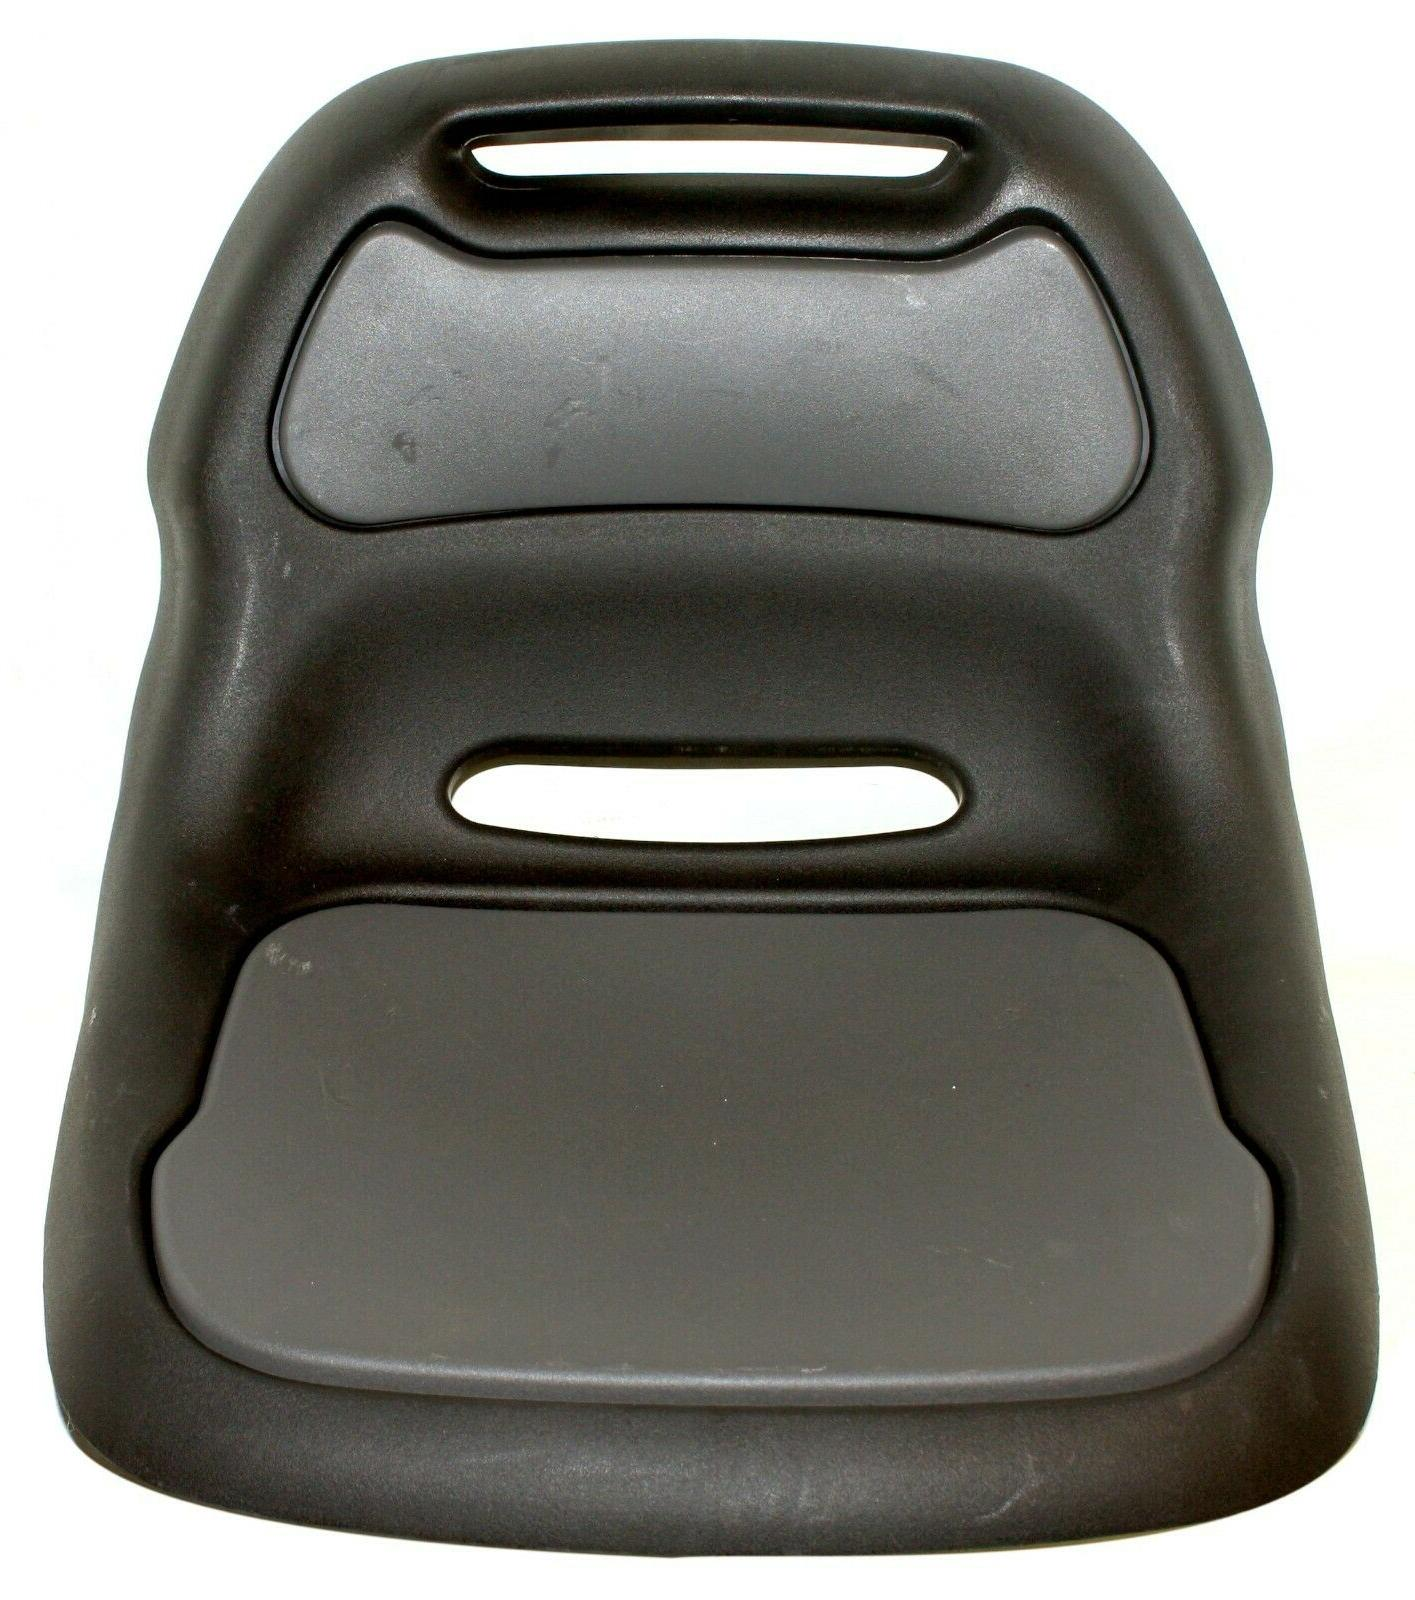 440693 428243 replacement lawn mower seat model